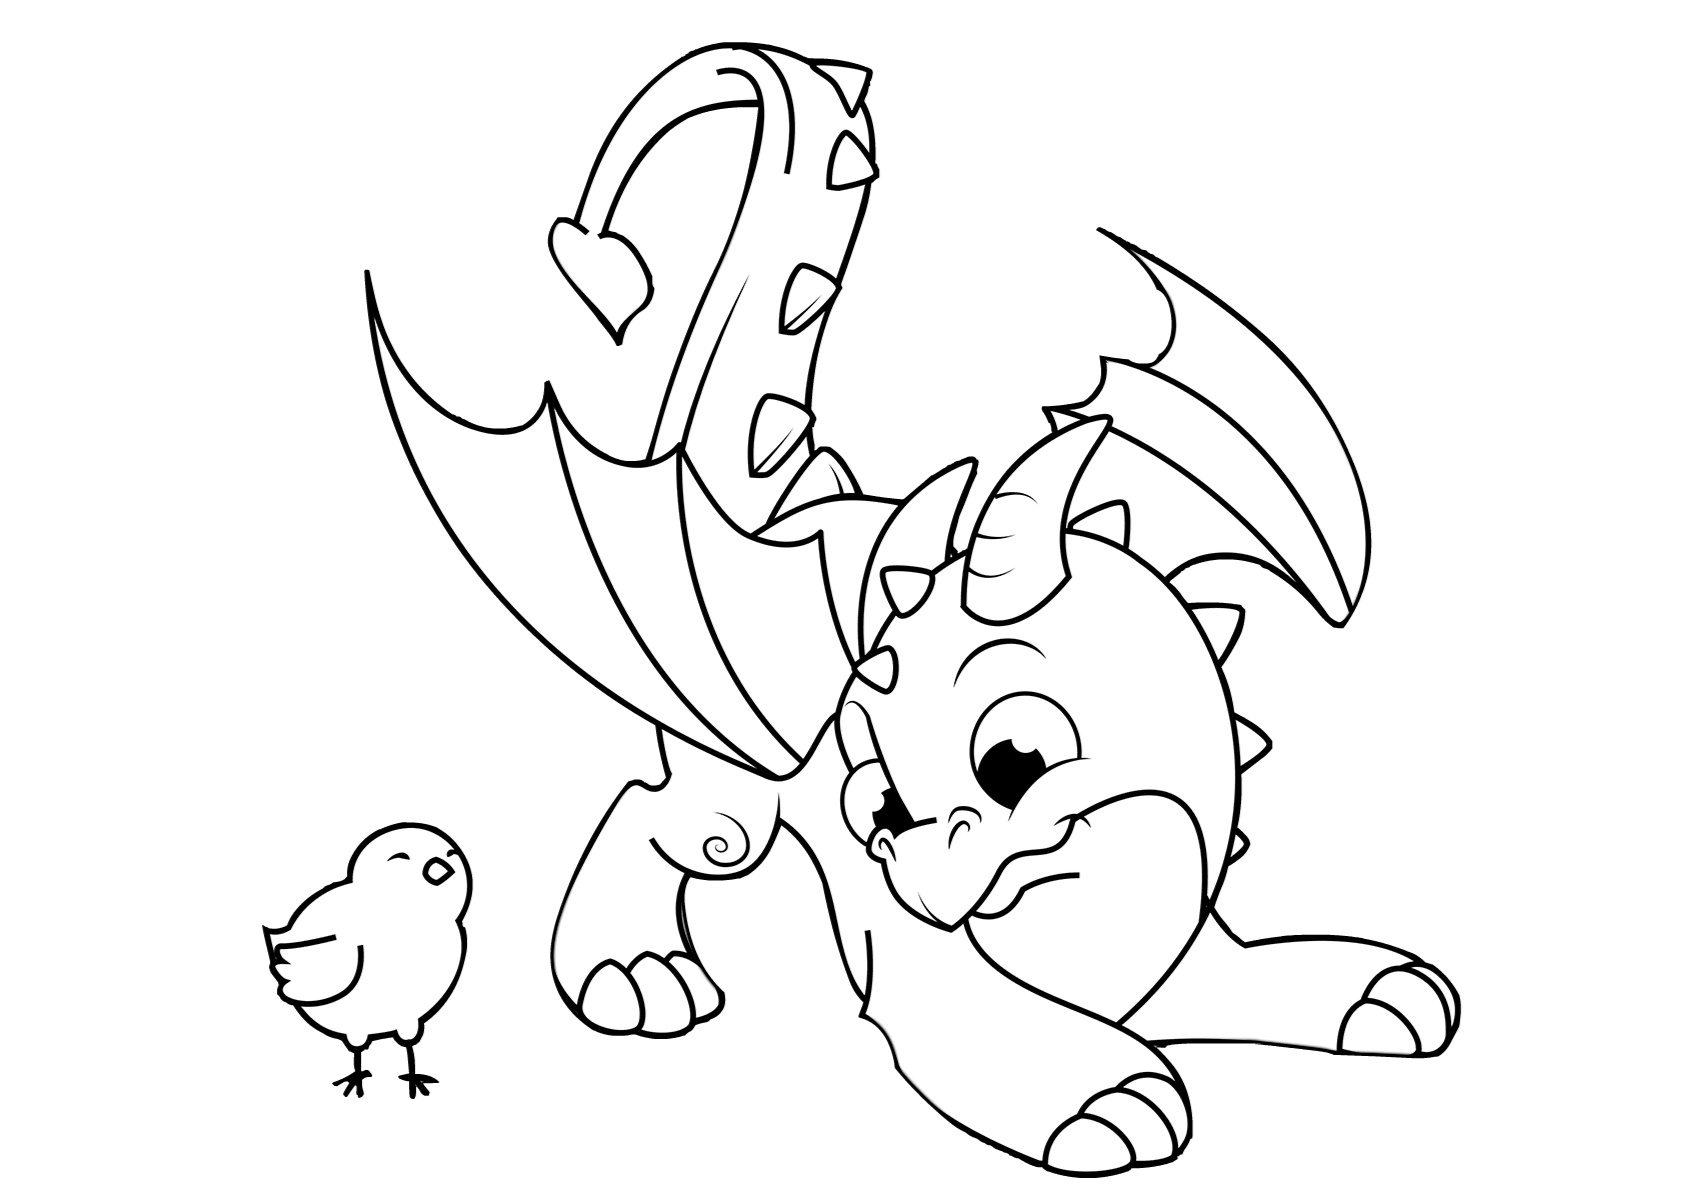 Playful Little Dragon Playing with Chicken Dragon Coloring Pages for Kids